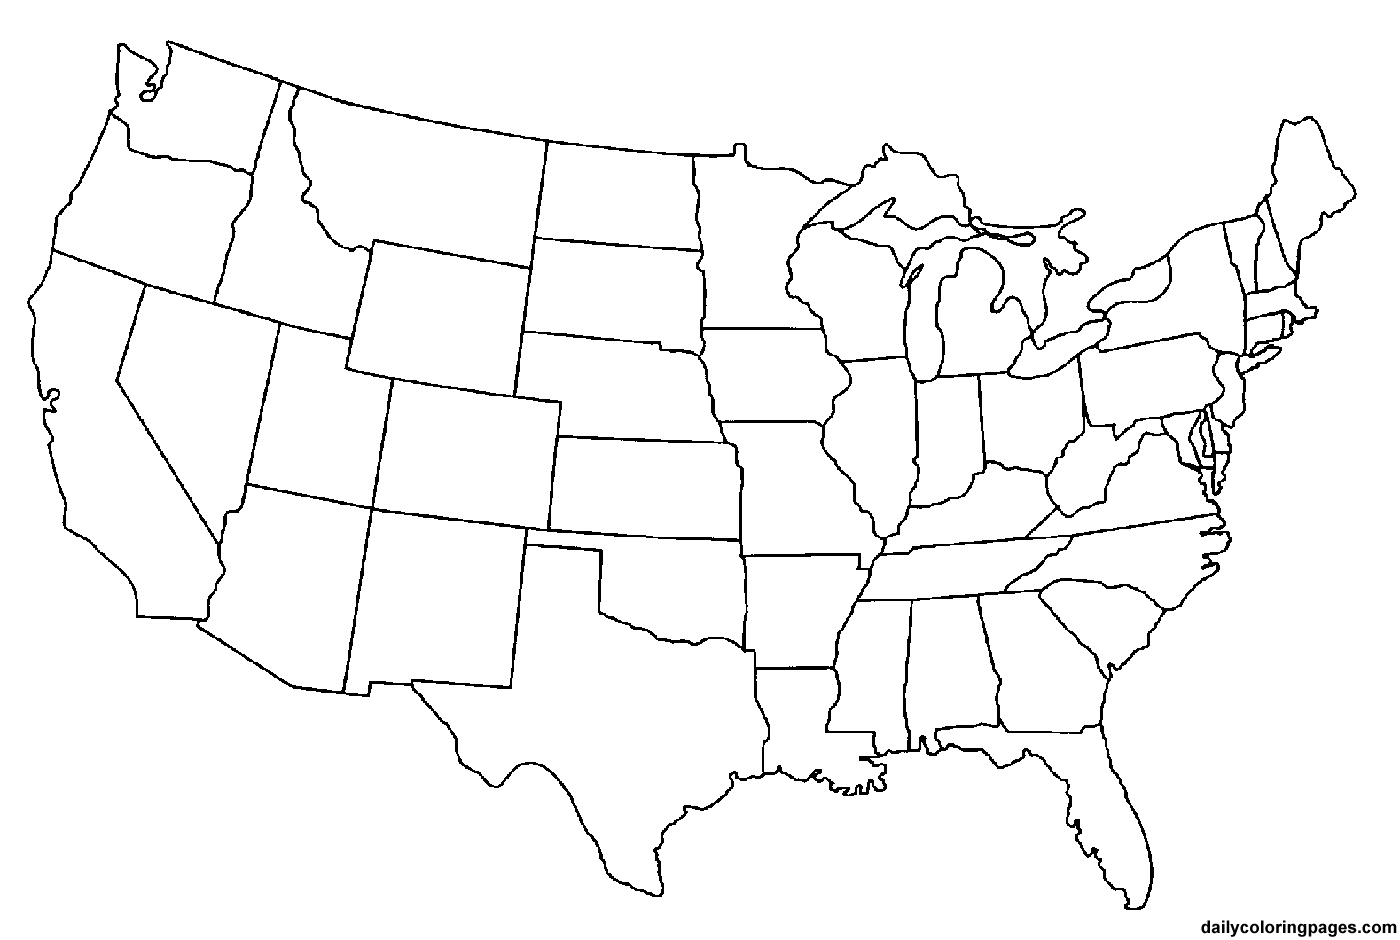 us state map coloring page 50 states coloring pages at getcoloringscom free page us state map coloring